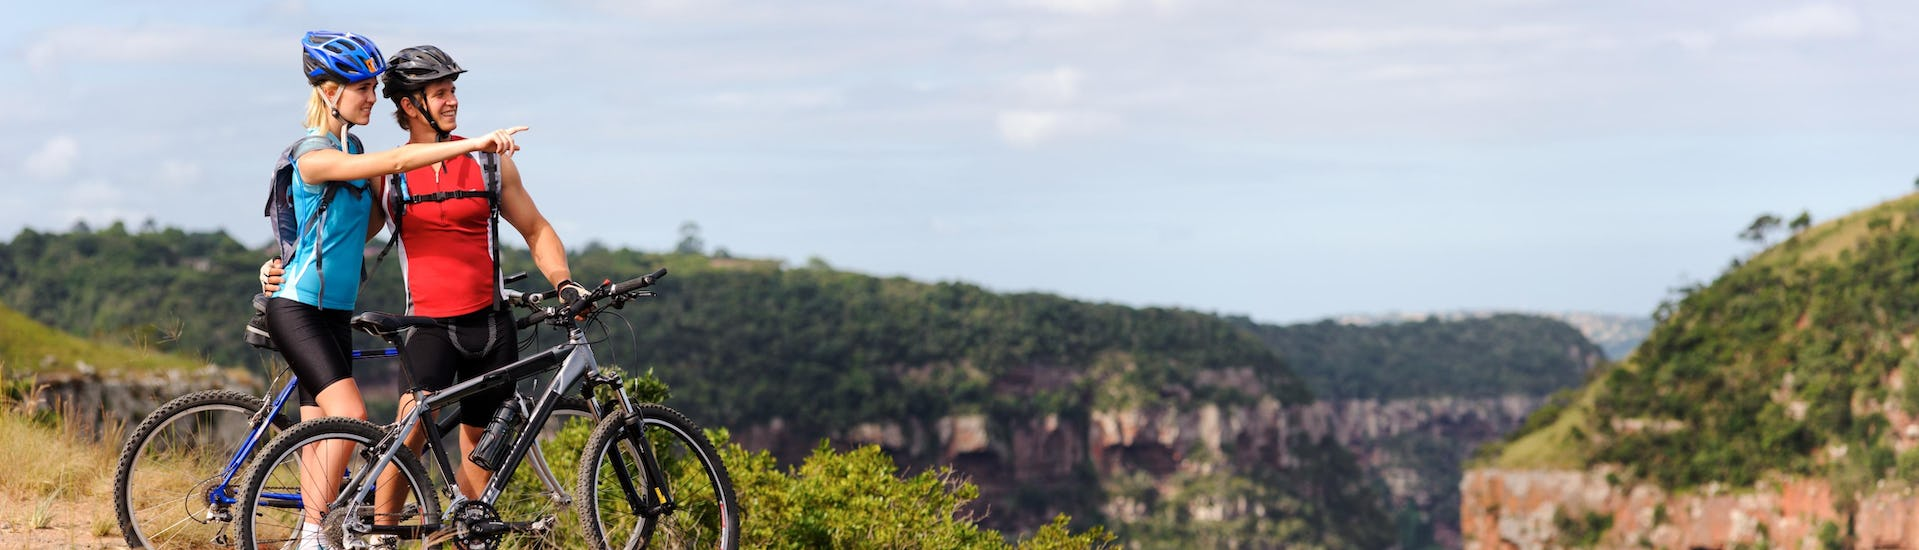 Couple is mountainbiking and enjoying the view during a stop